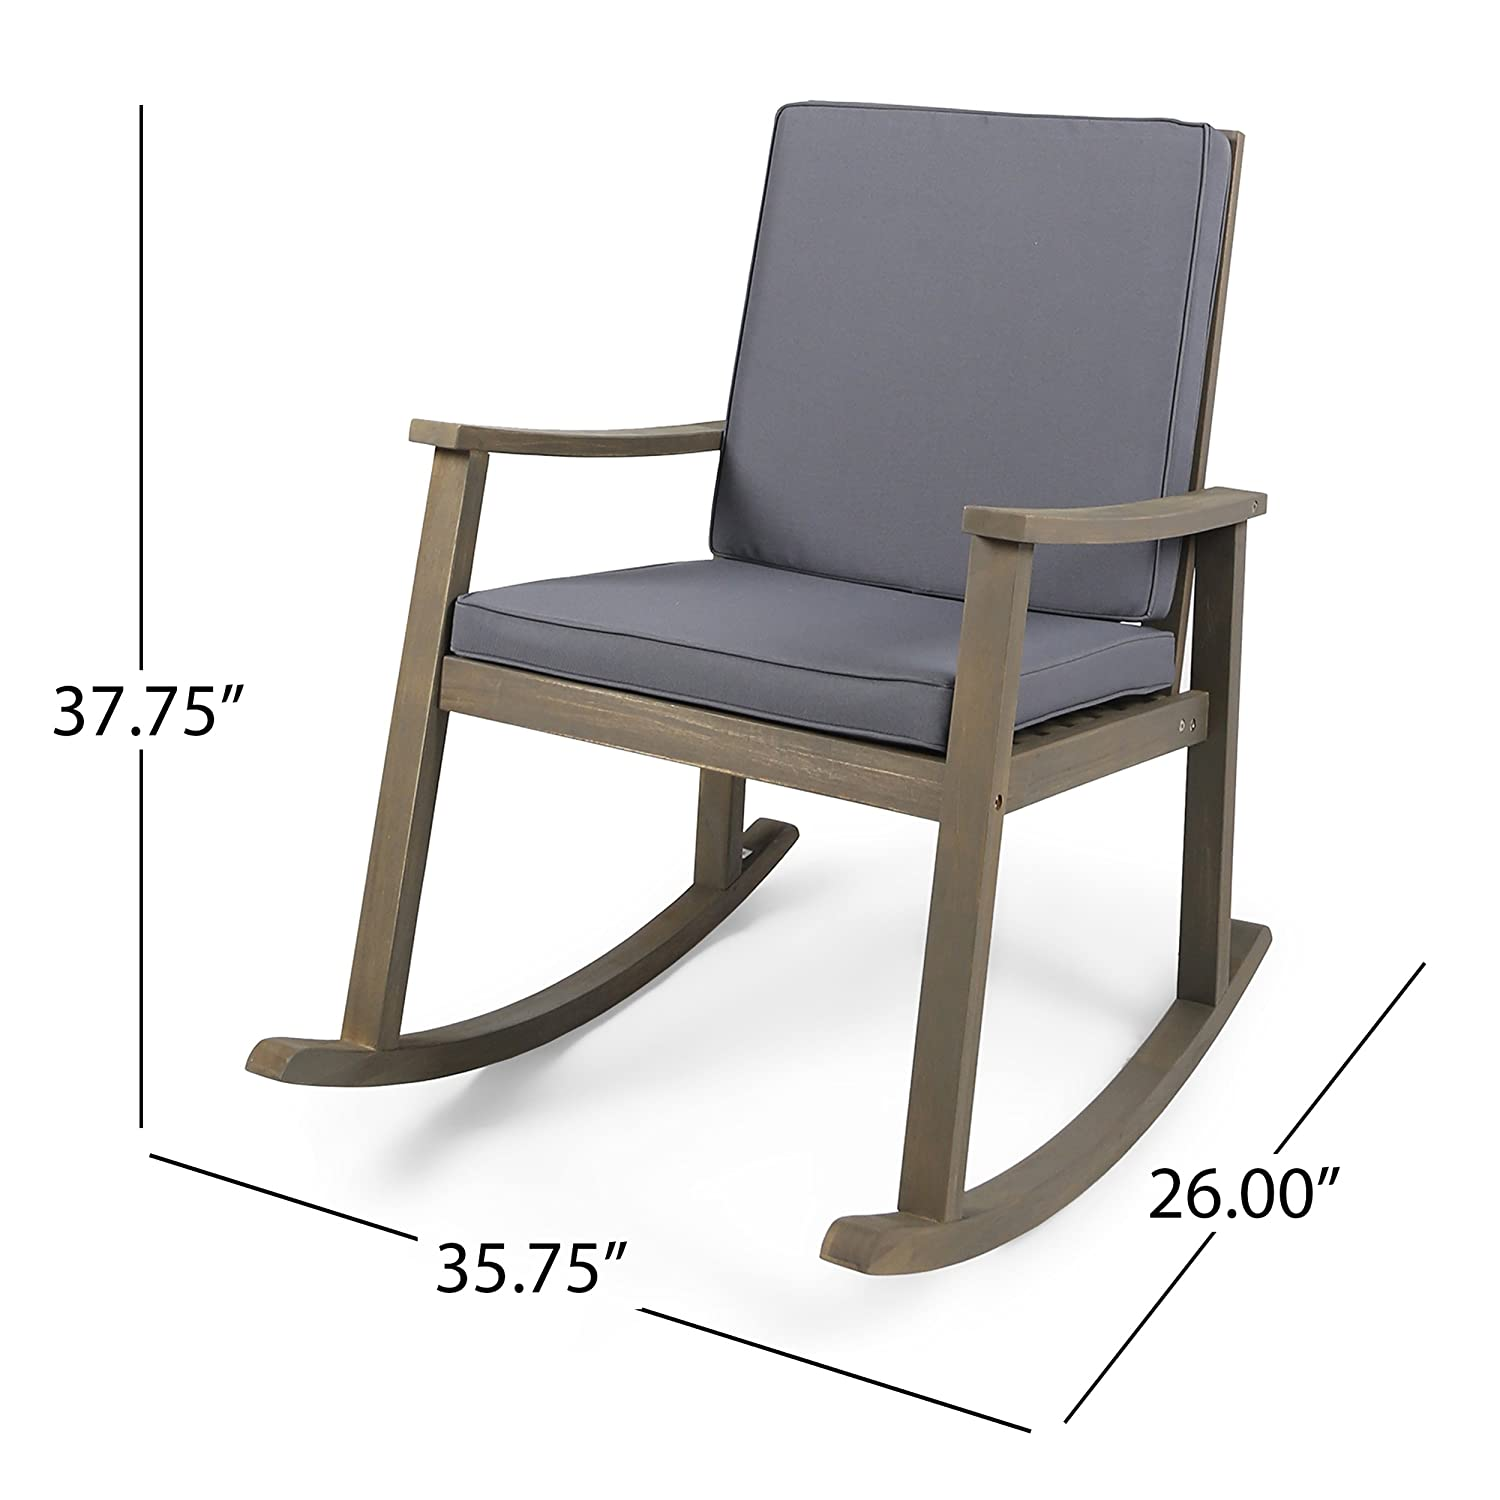 Merveilleux Amazon.com : Great Deal Furniture Caspar | Outdoor Acacia Wood Rocking Chair  With Cushion | Grey/Dark Grey : Garden U0026 Outdoor